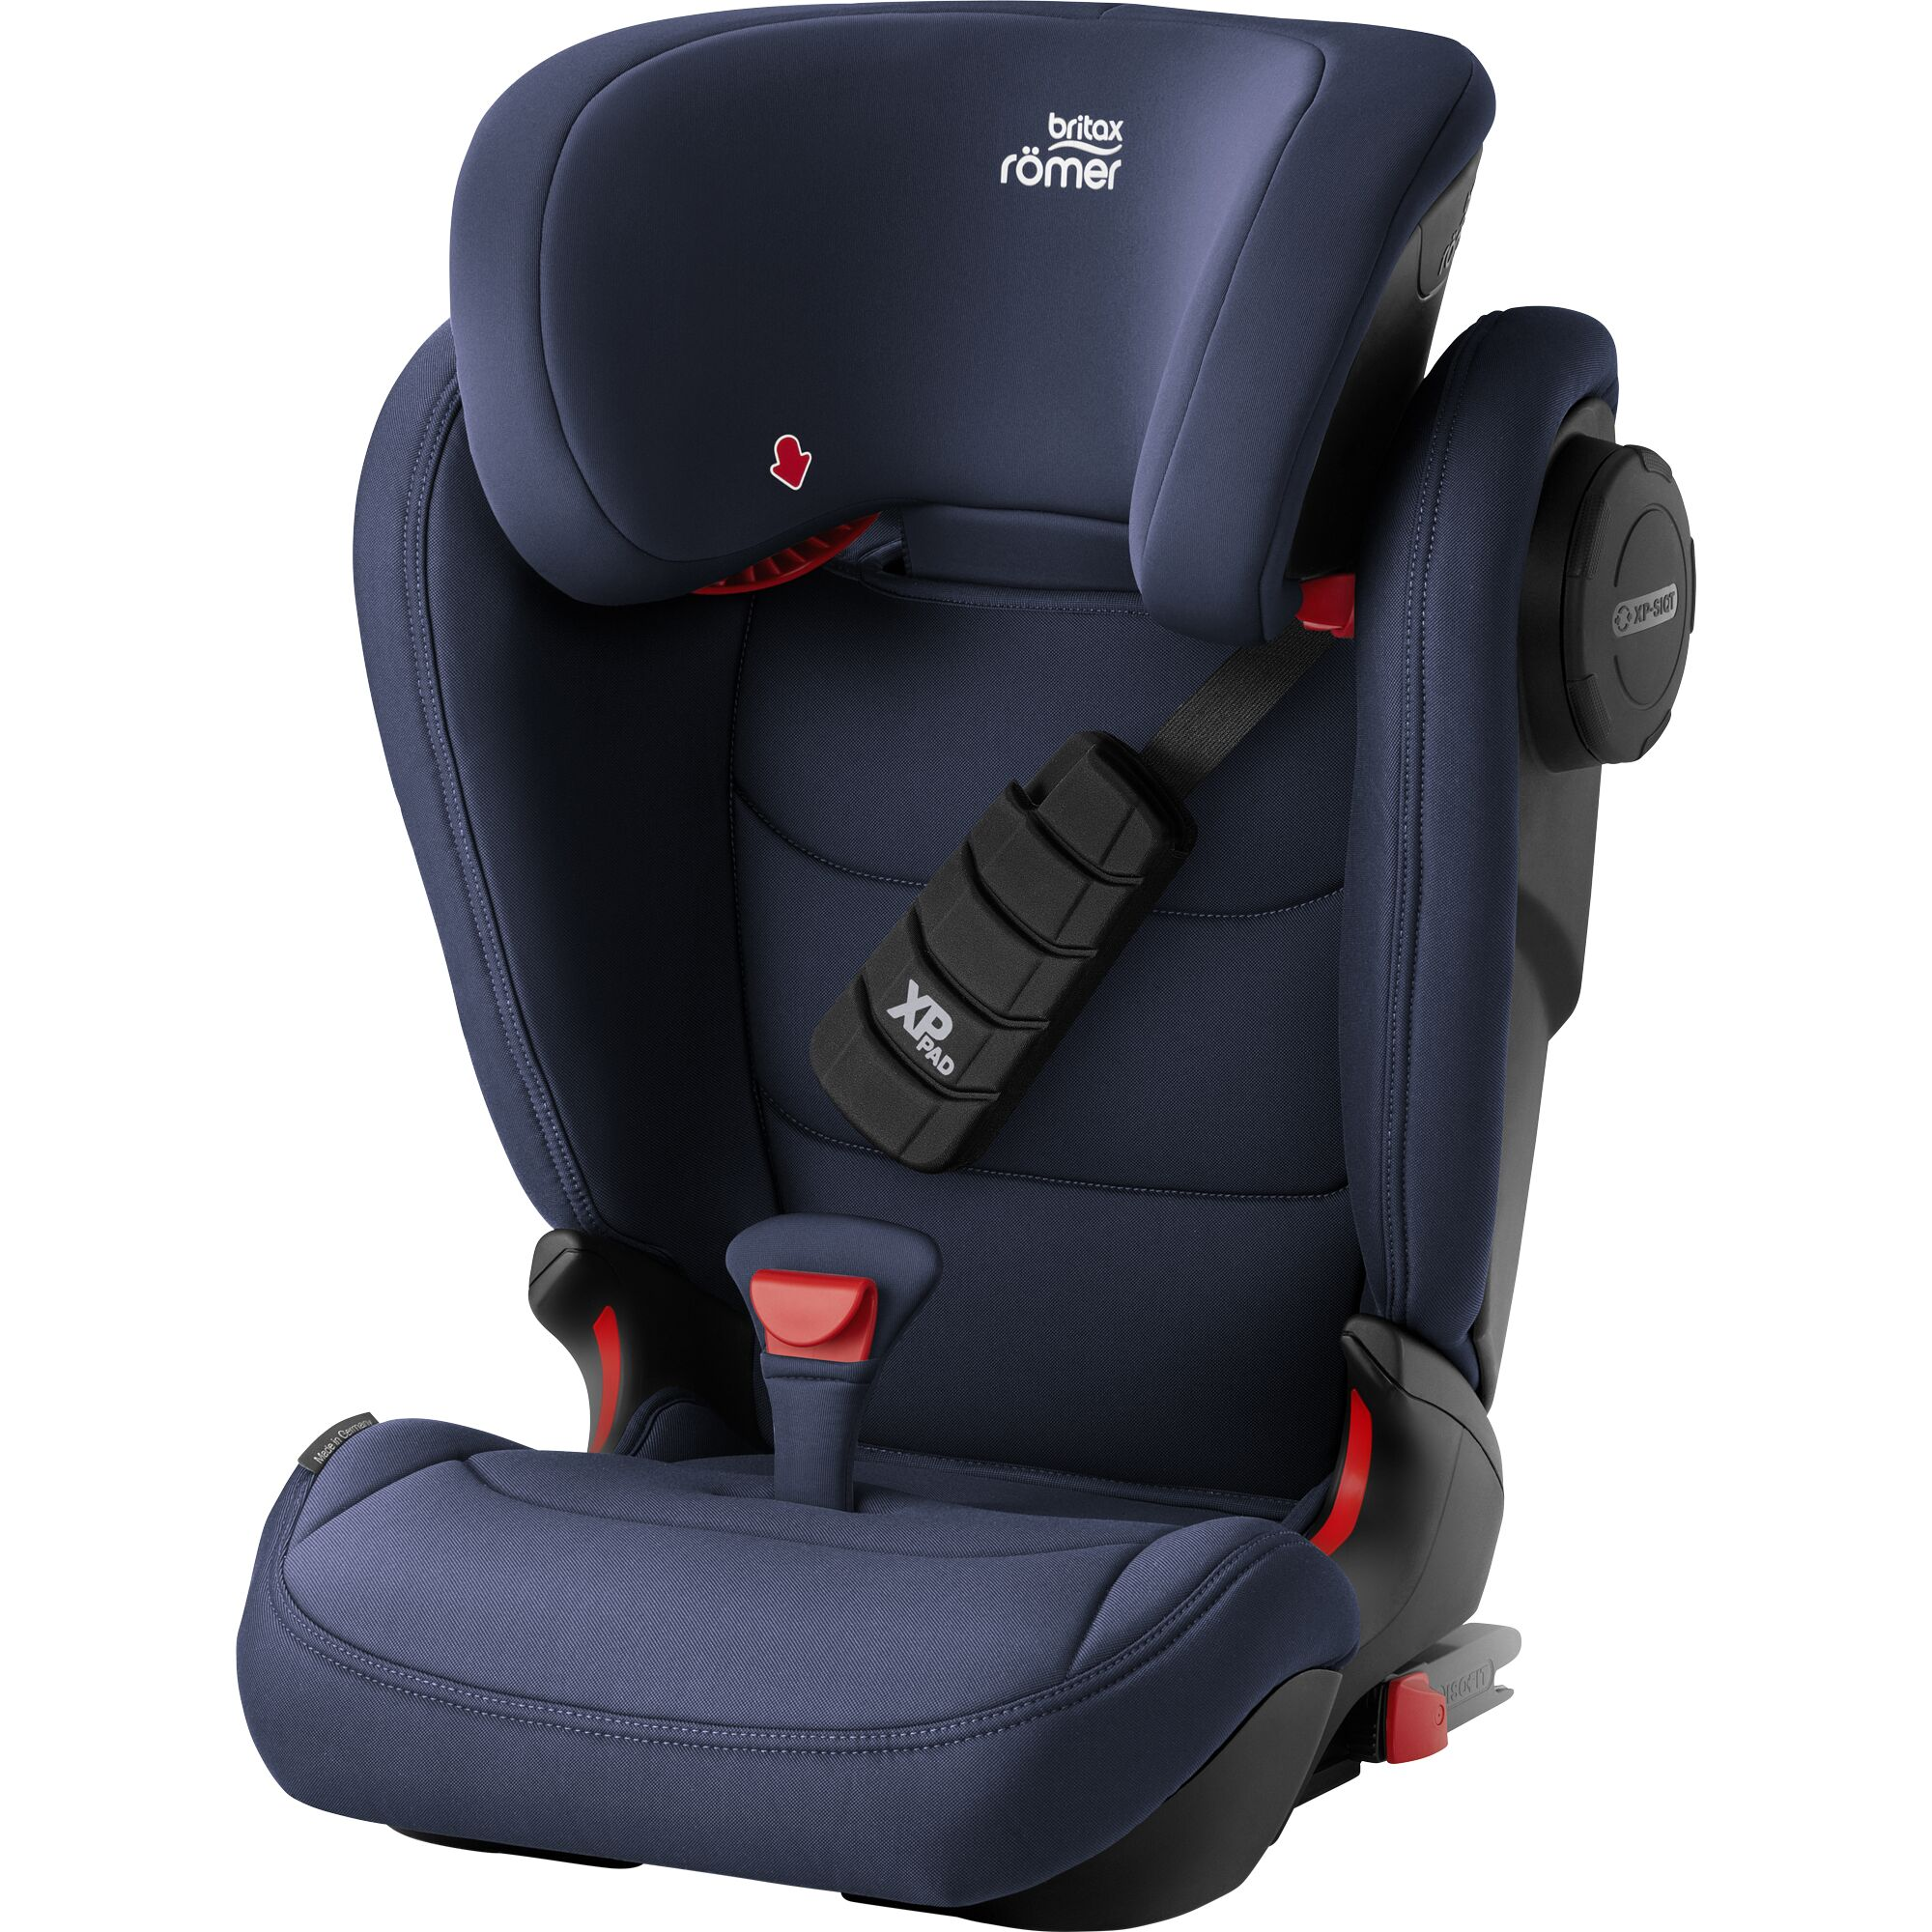 ROMER Kidfix III S 2020 Moonlight Blue